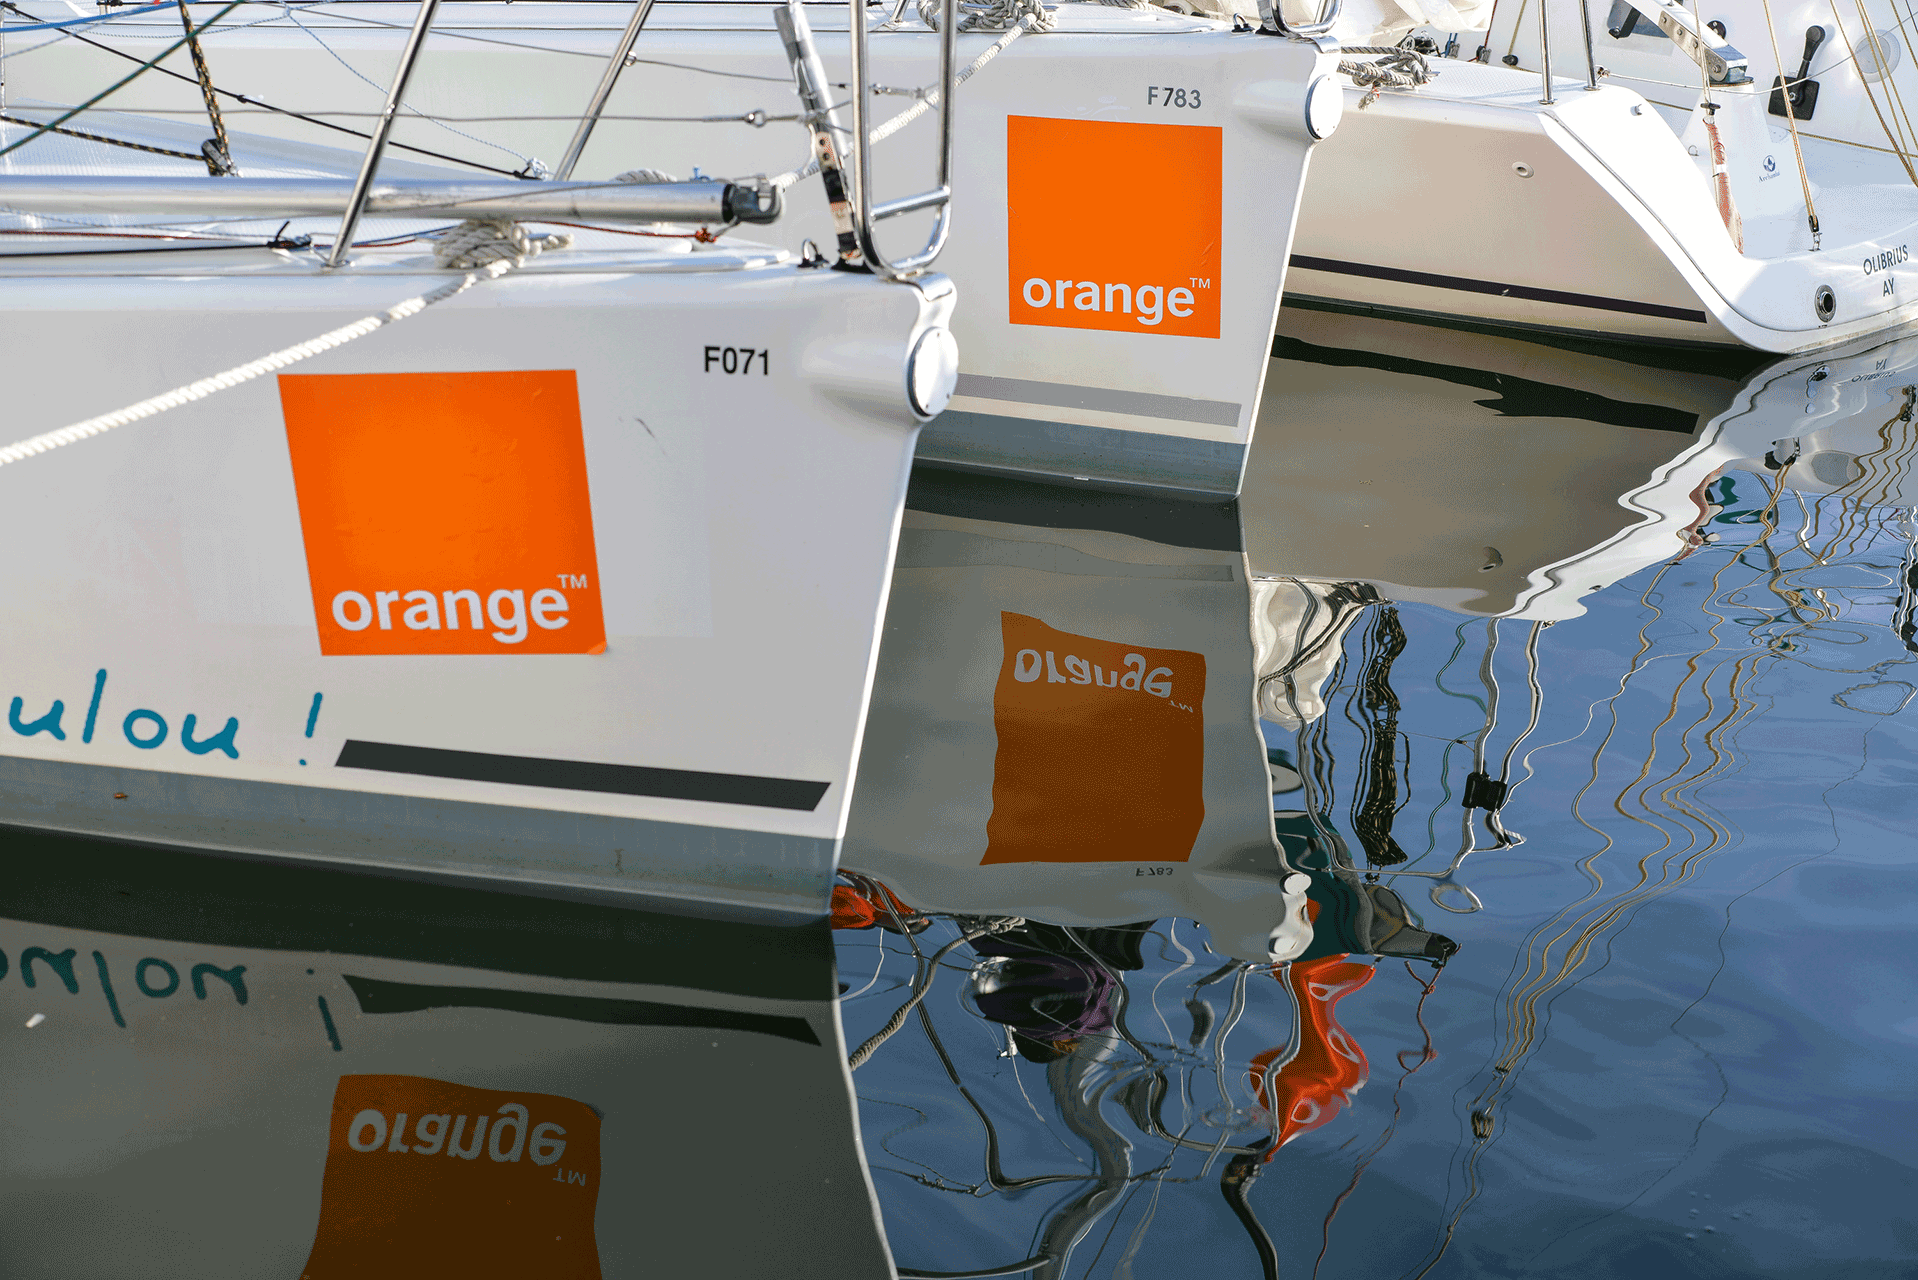 armor-cup-orange-photo-corporate-val-de-marne